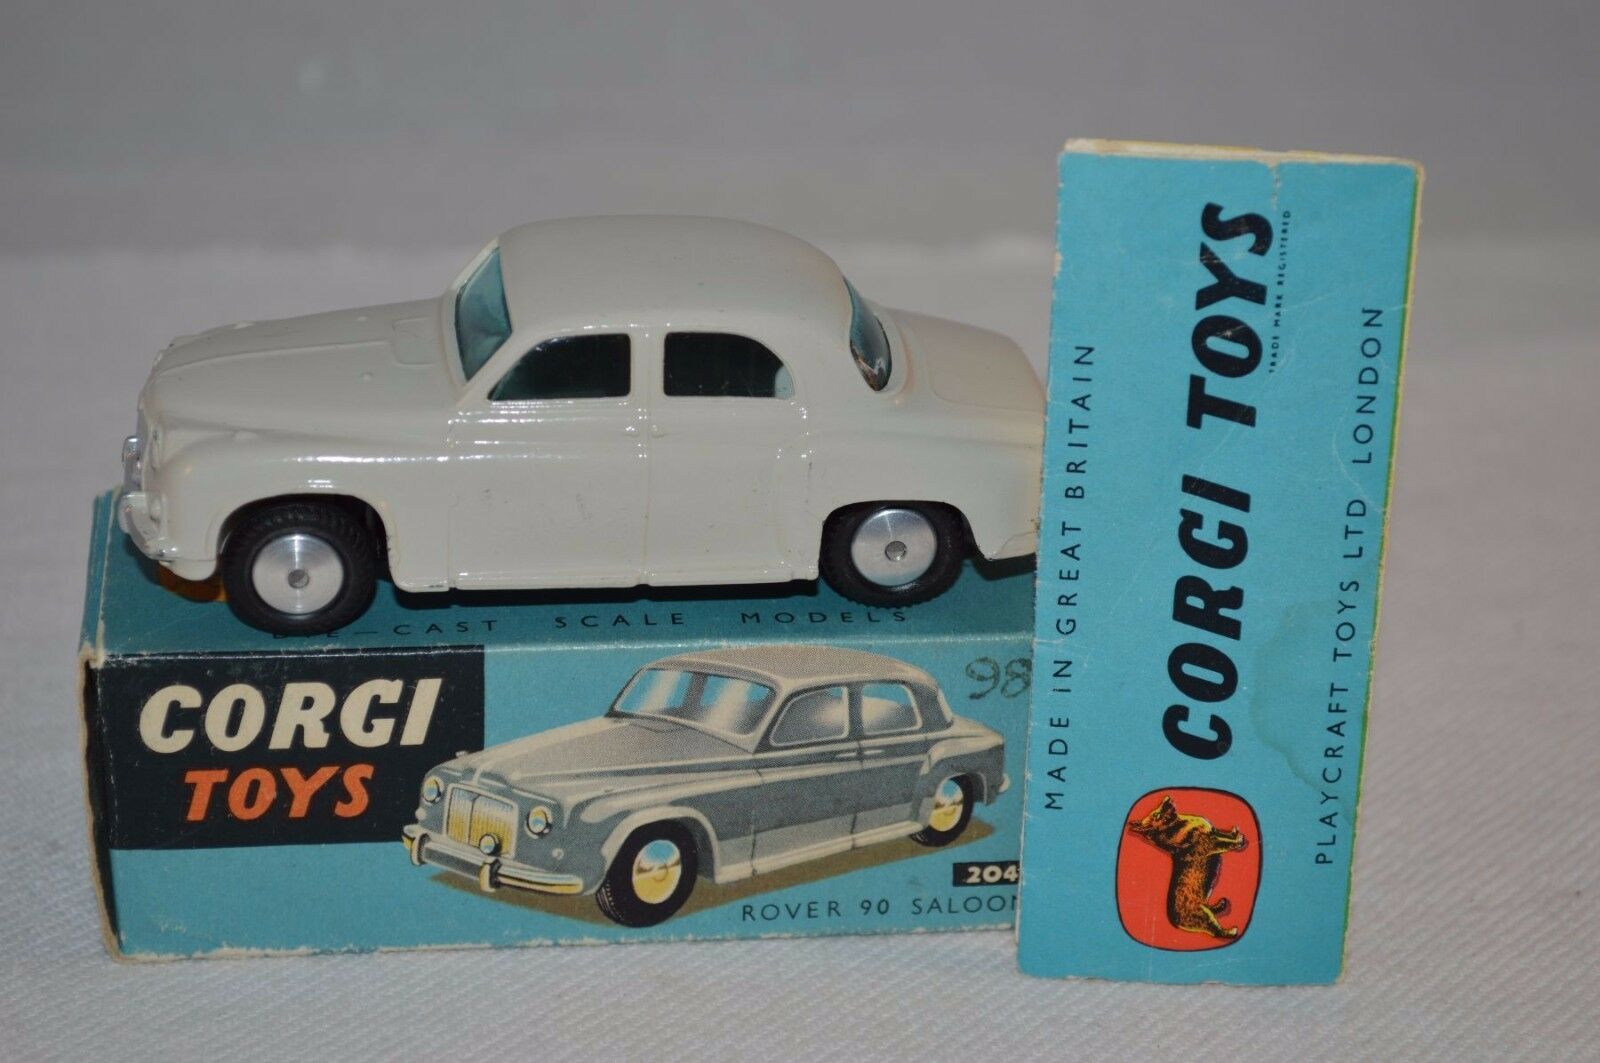 Corgi Toys 204 Rover 90 Saloon in excellent plus to near mint condition in box